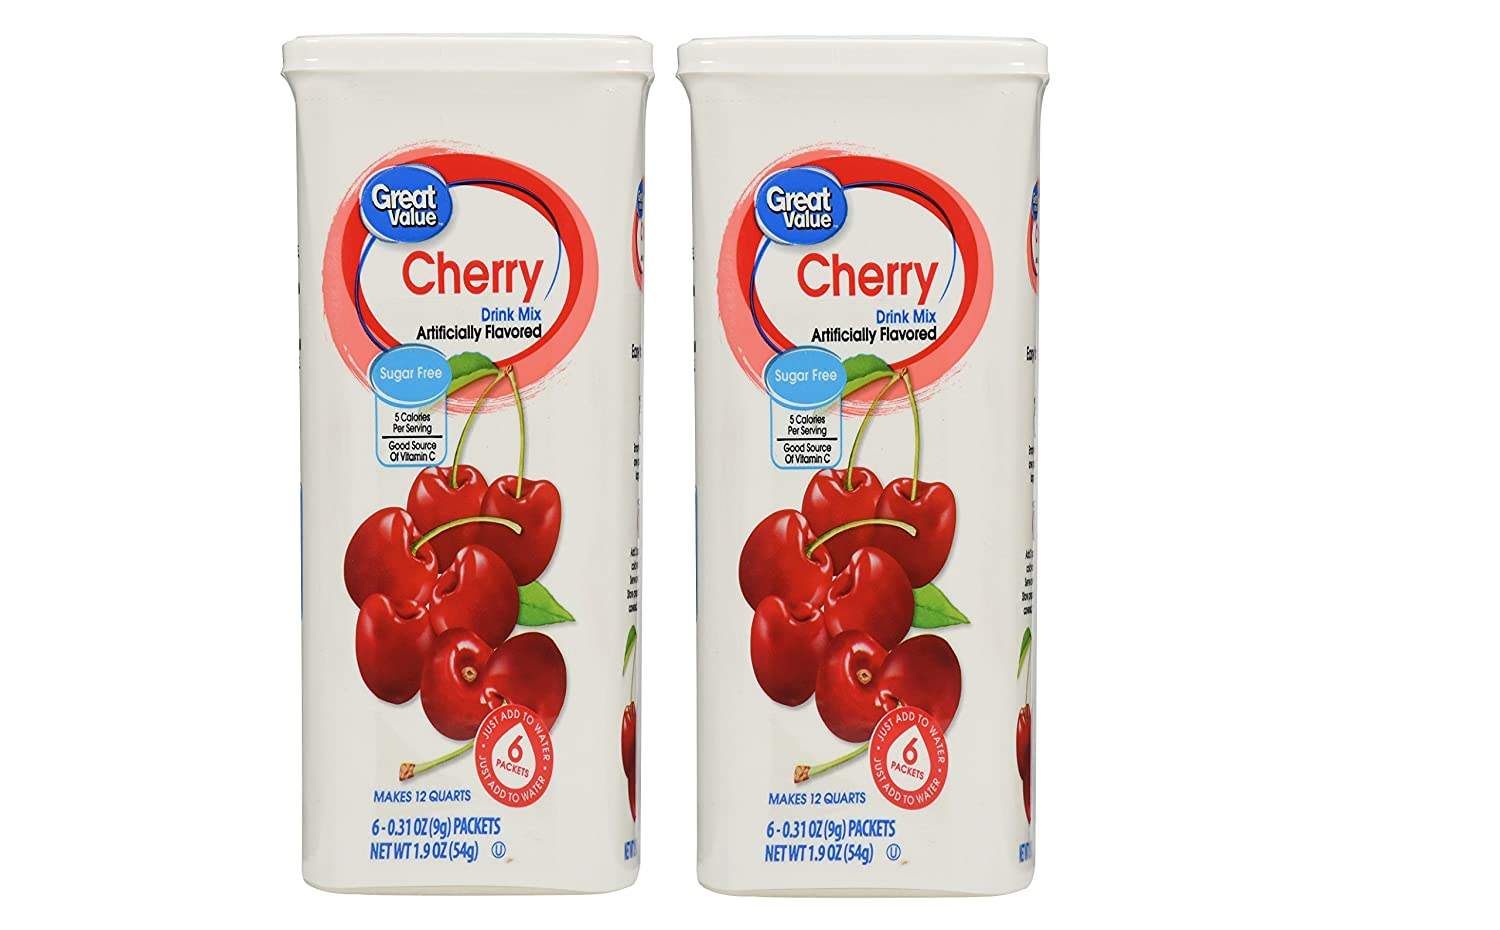 Great Value Cherry Drink Mix, 1.9 Oz- 6 Packets (Pack of 2)